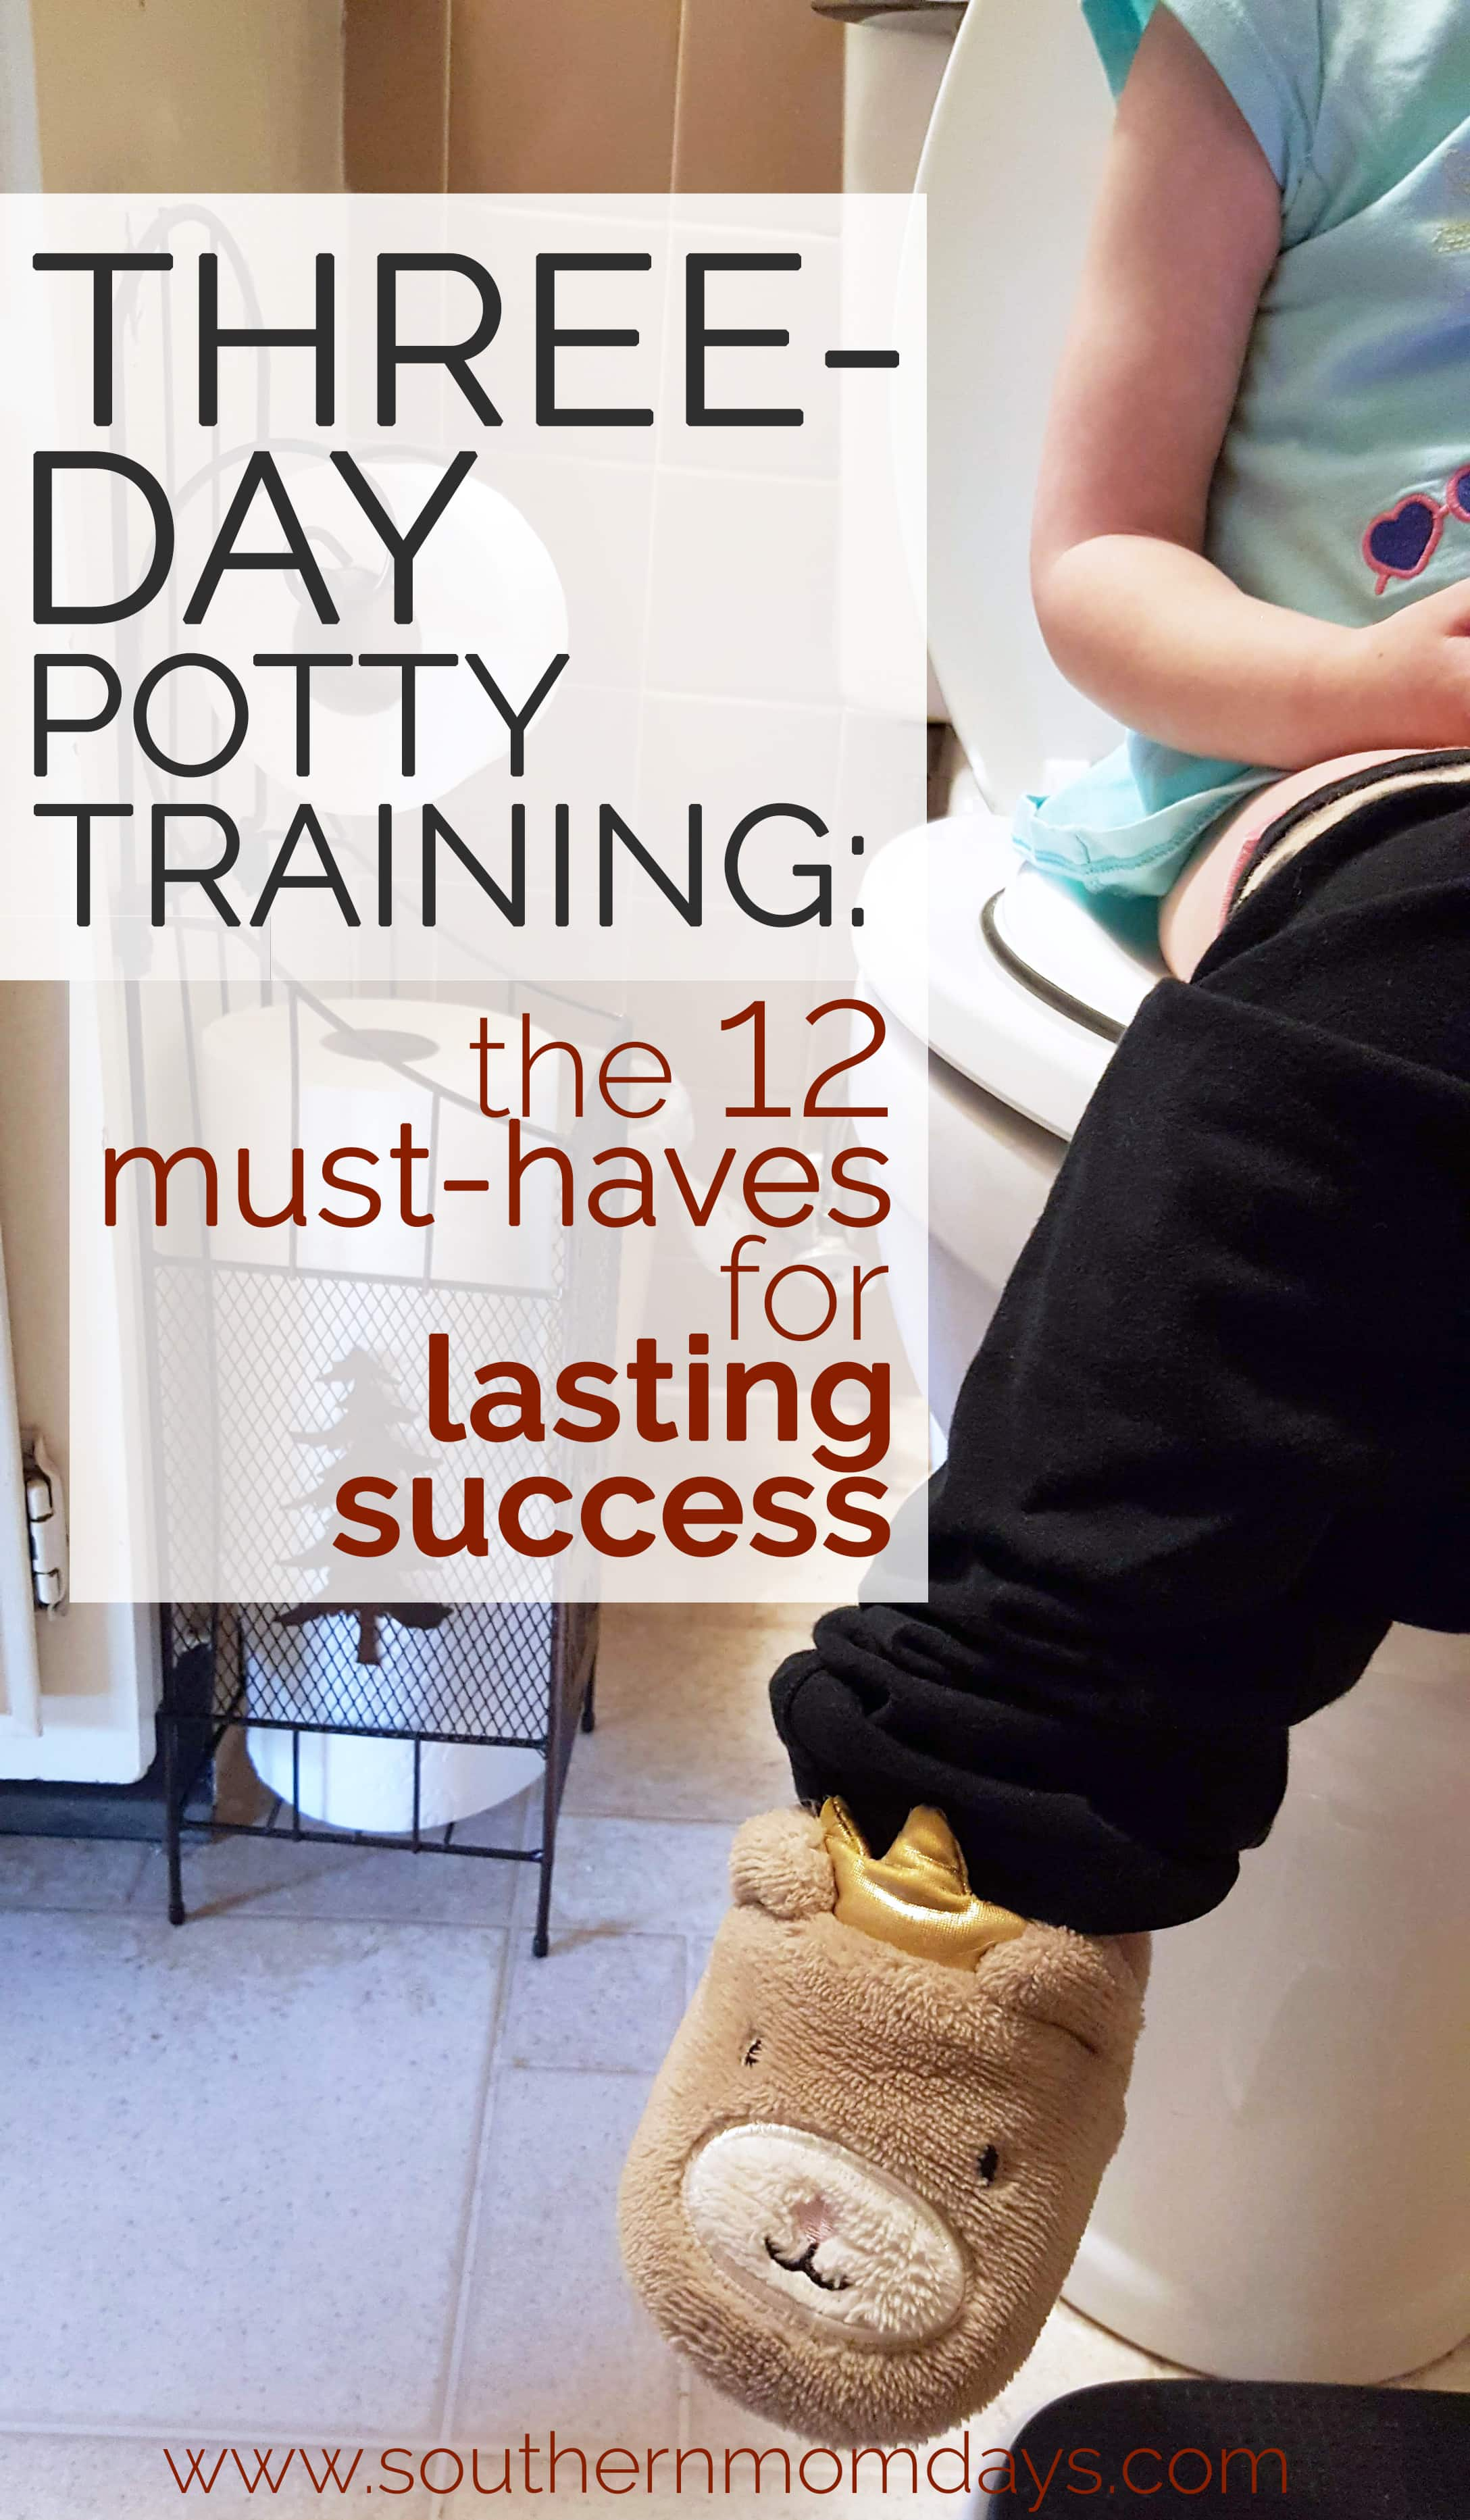 Three-Day Potty Training: 12 Must-Haves for Lasting Success, featured on Southern Momdays